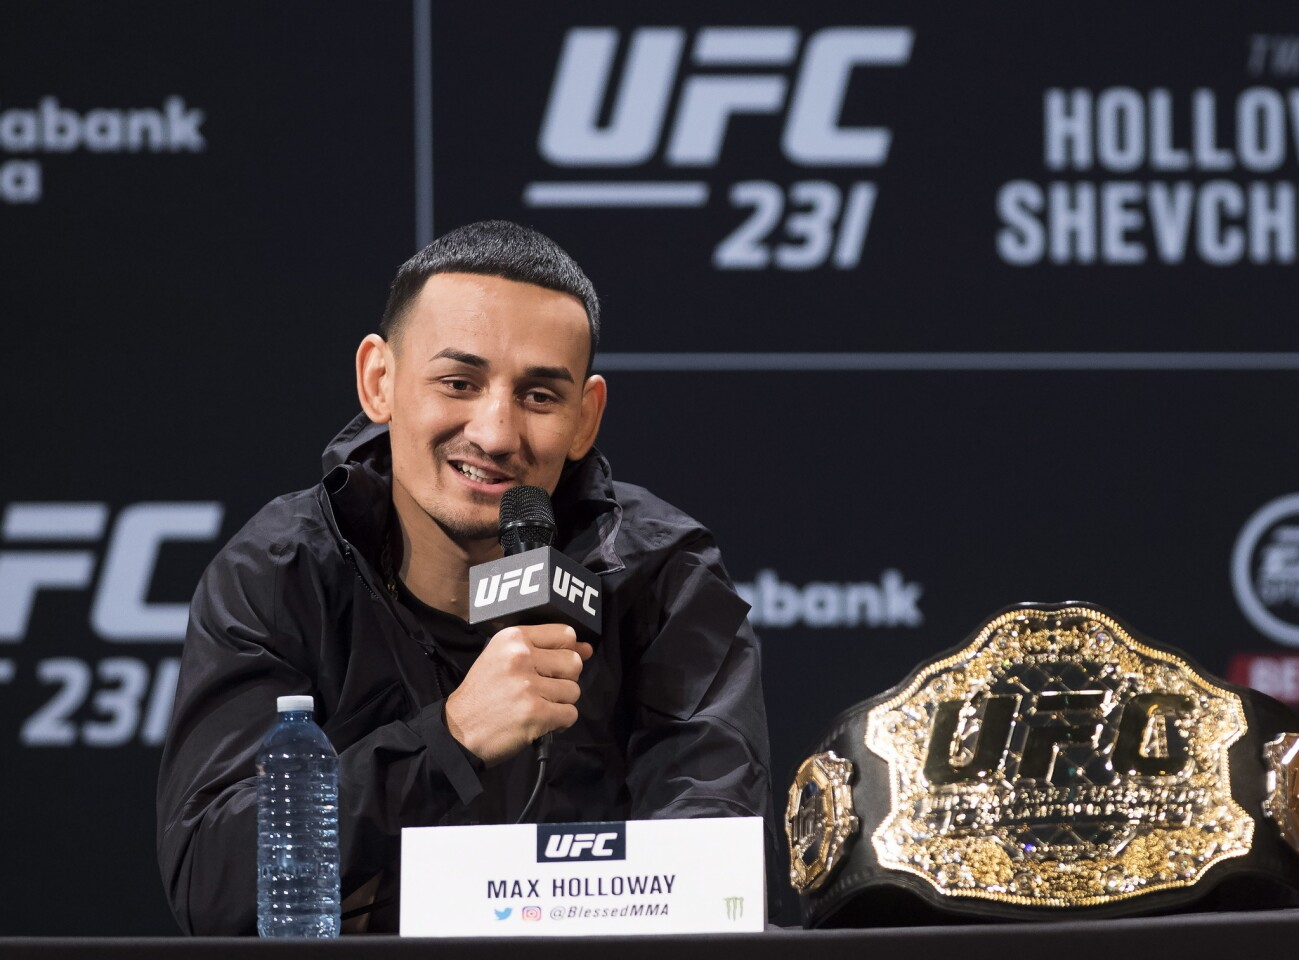 UFC featherweight champion Max Holloway speaks at a press conference, Wednesday, Dec. 5, 2018 in Toronto. UFC 231 takes place on Saturday, Dec. 8, 2018. (Nathan Denette/The Canadian Press via AP)